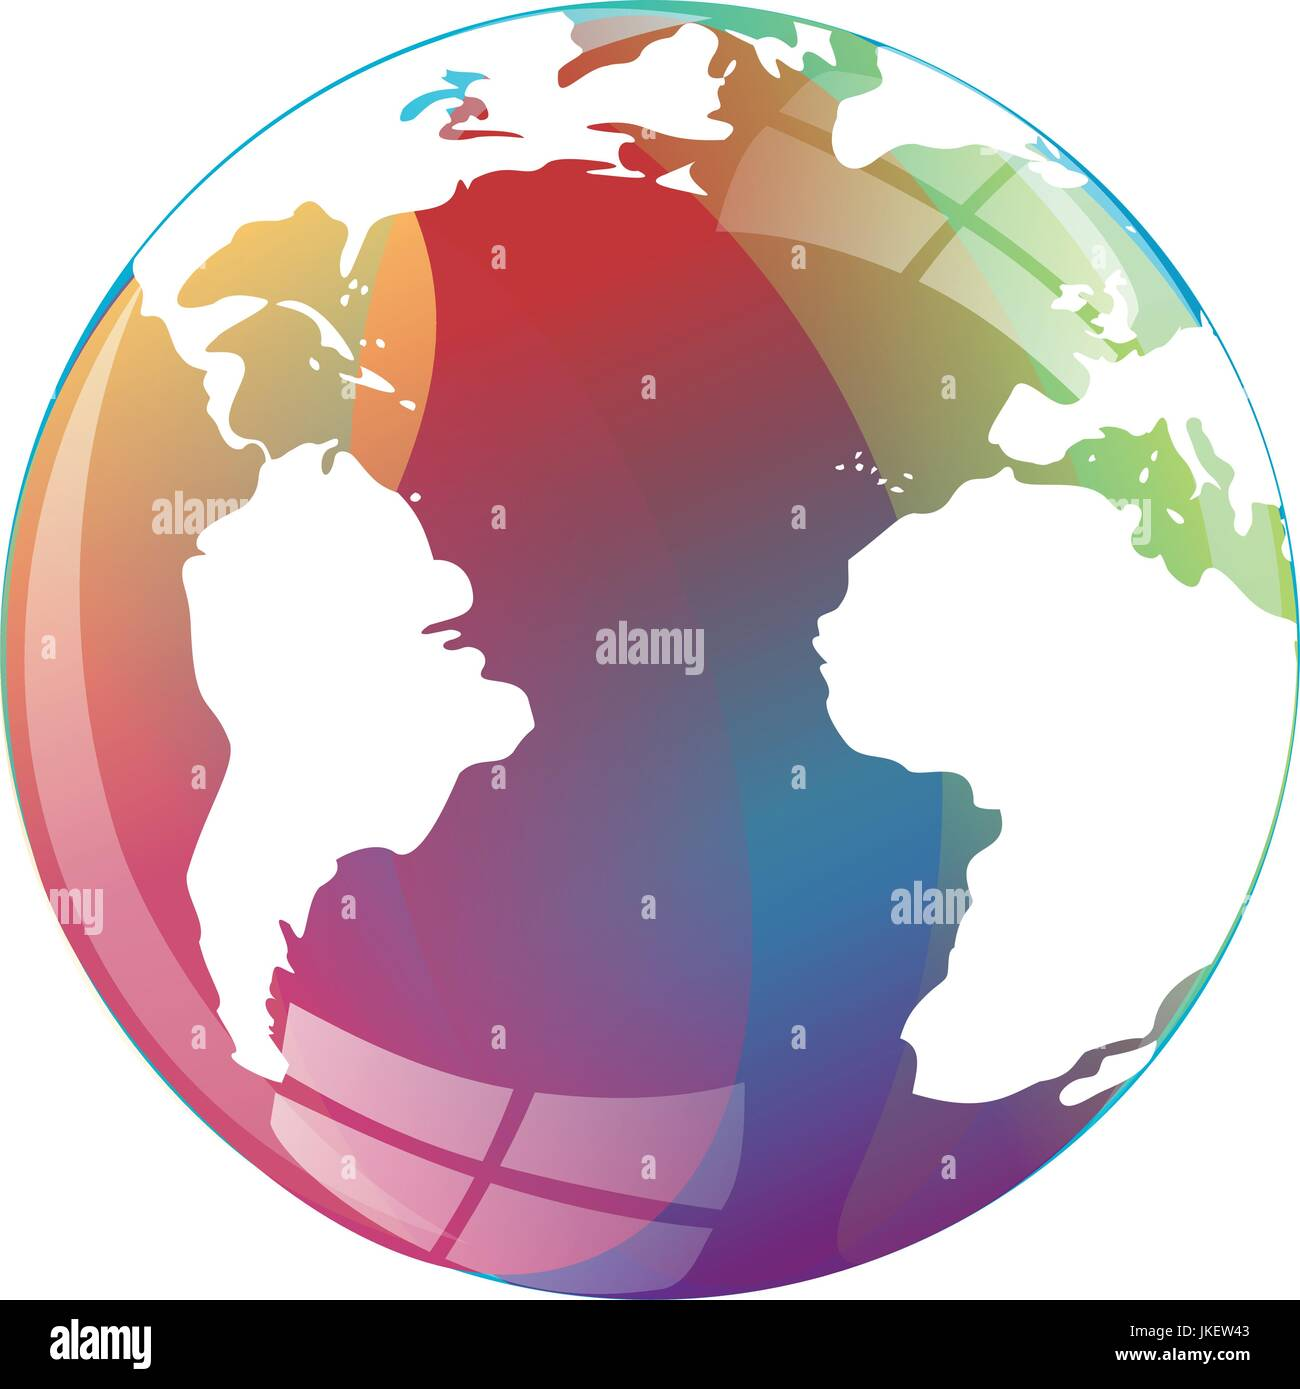 Colorful earth globe icon map world stock vector art illustration colorful earth globe icon map world gumiabroncs Gallery